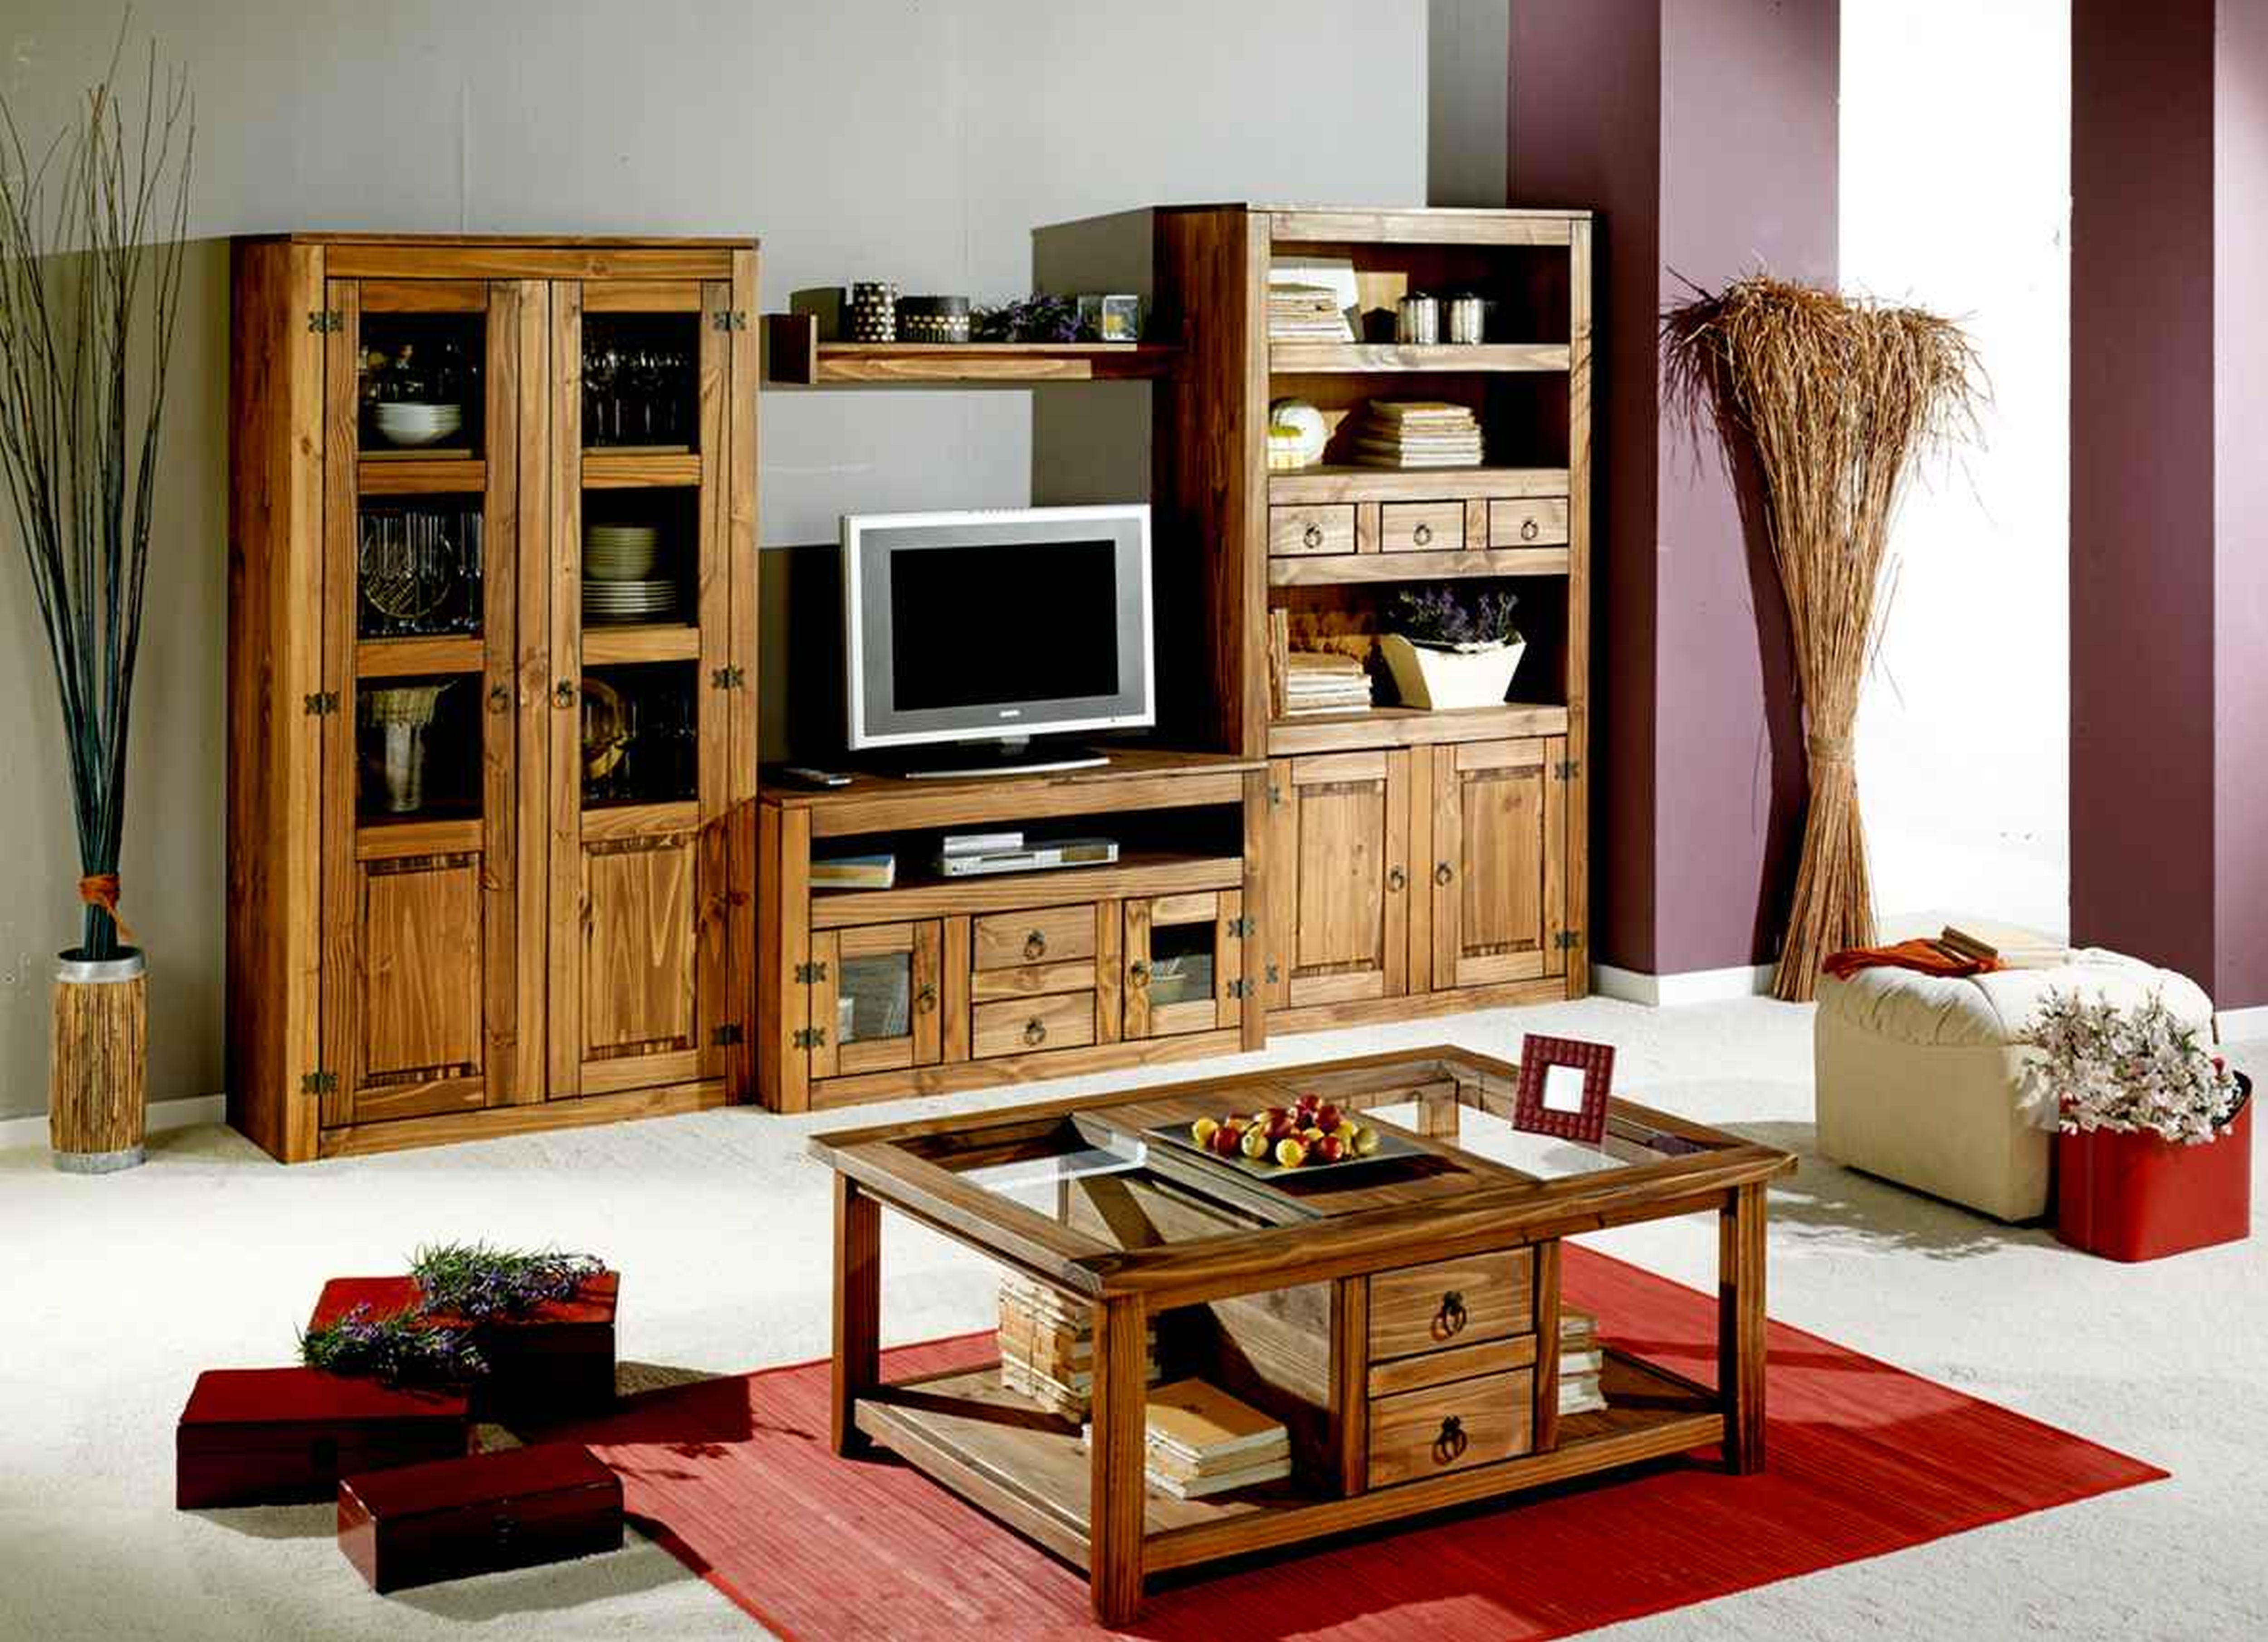 Get To Have Newer Home Decoration Ideas At A Go - darbylanefurniture.com